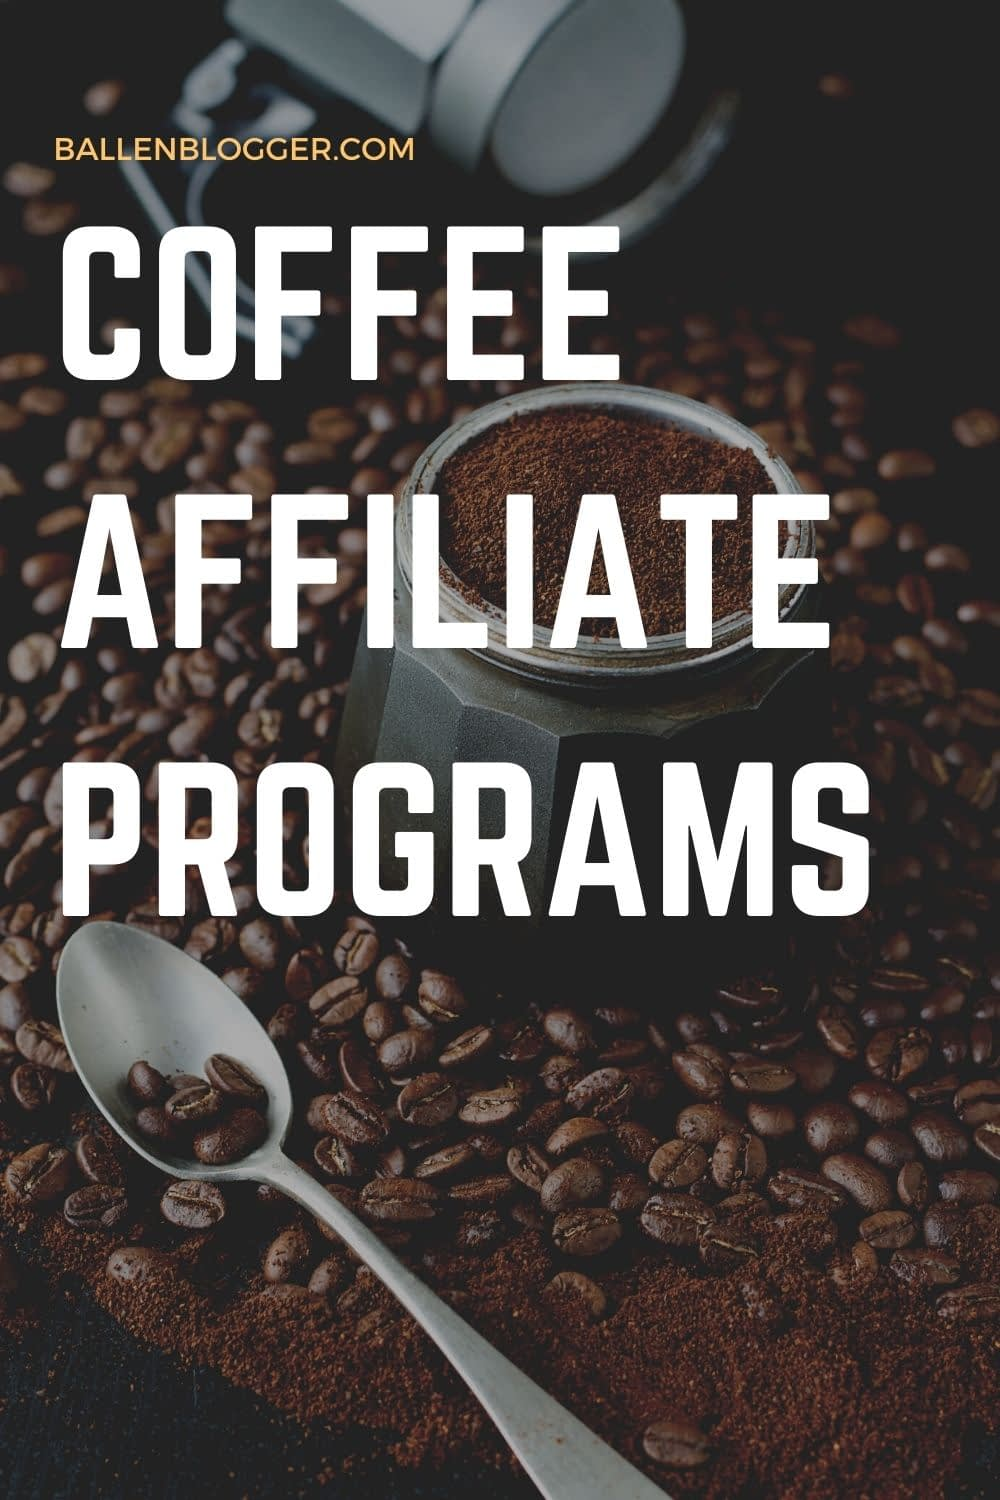 We'll give you the scoop on the best Coffee Affiliate programs and hearty commissions.